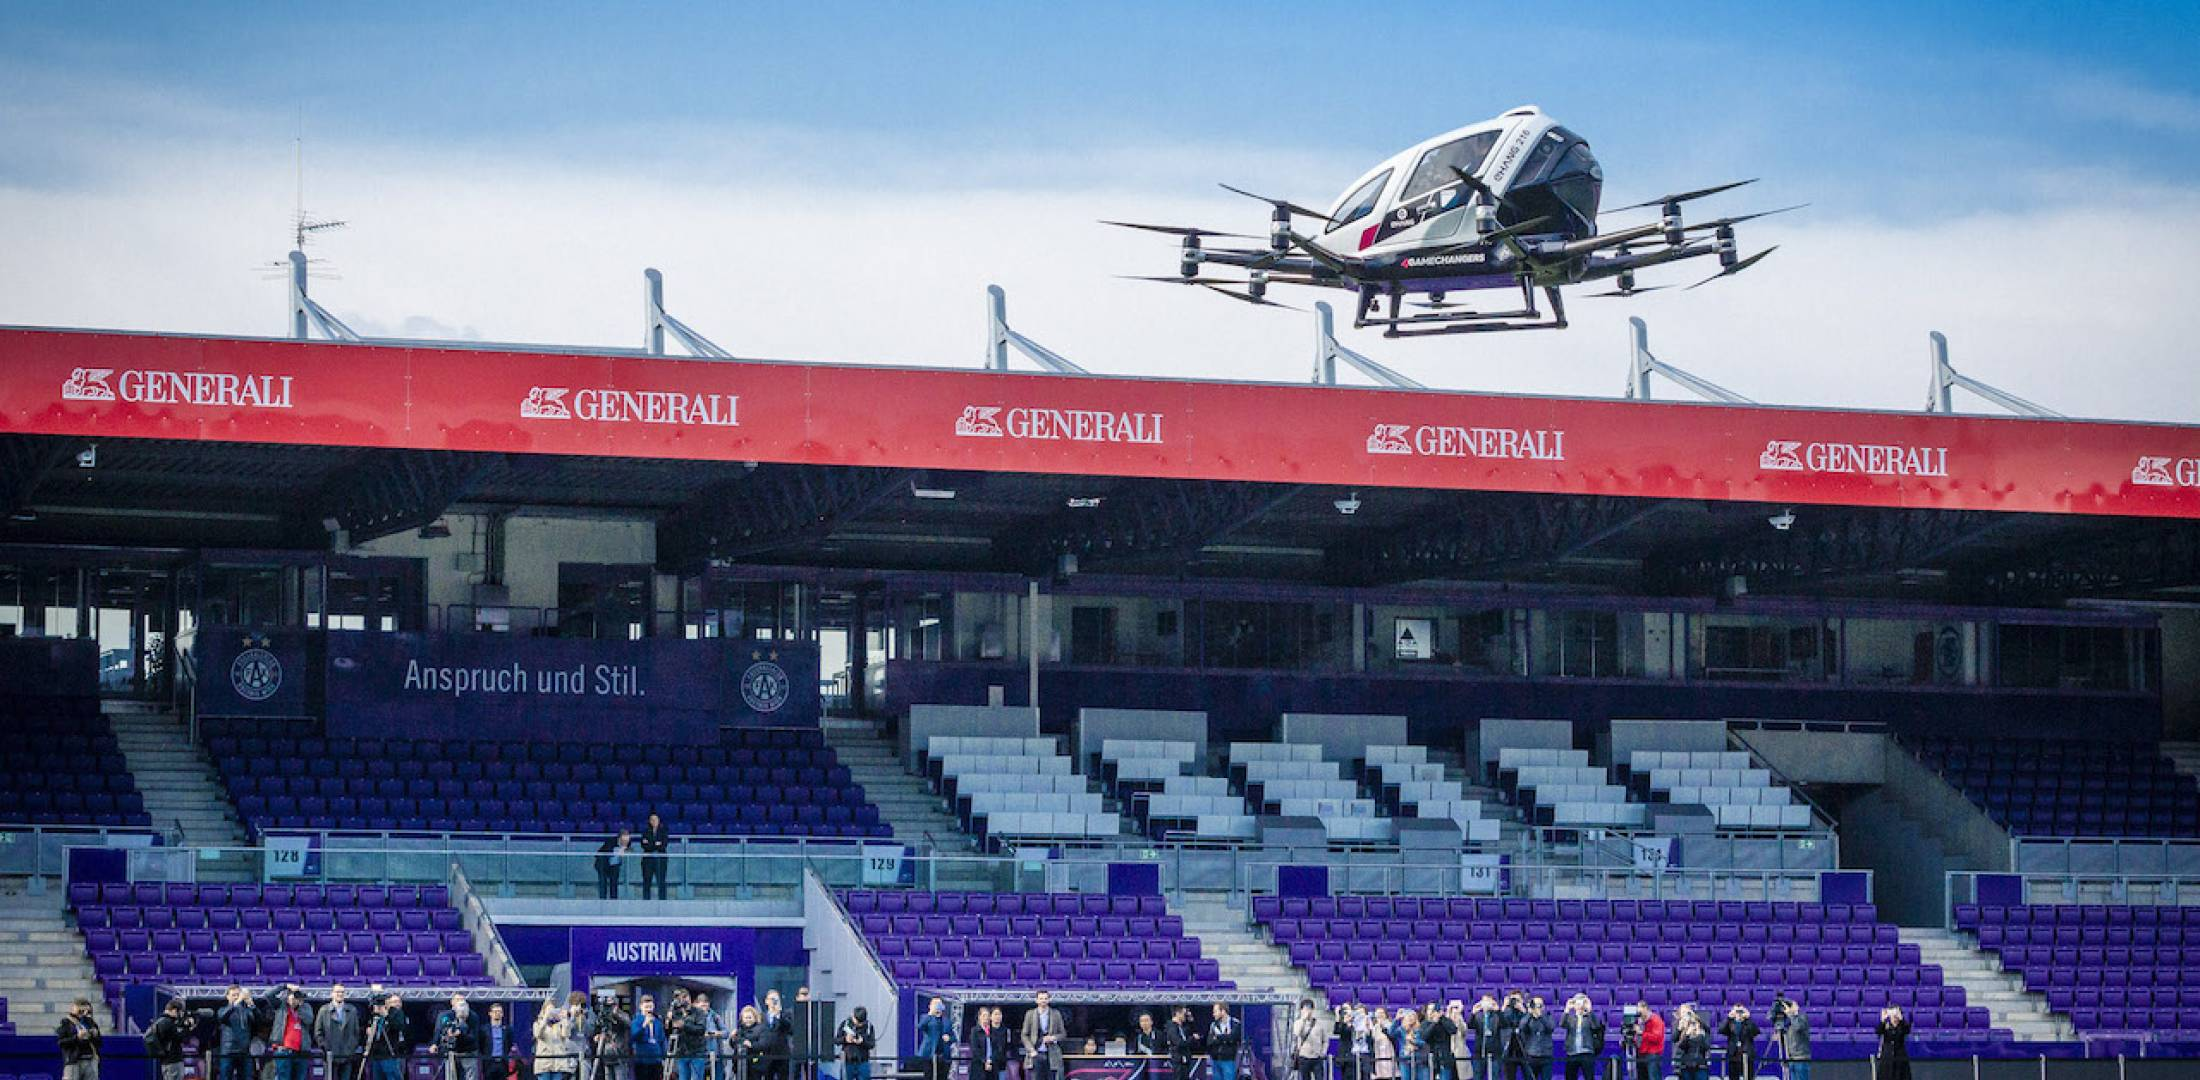 EHang 218 Autonomous Aerial Vehicle flying in Vienna.